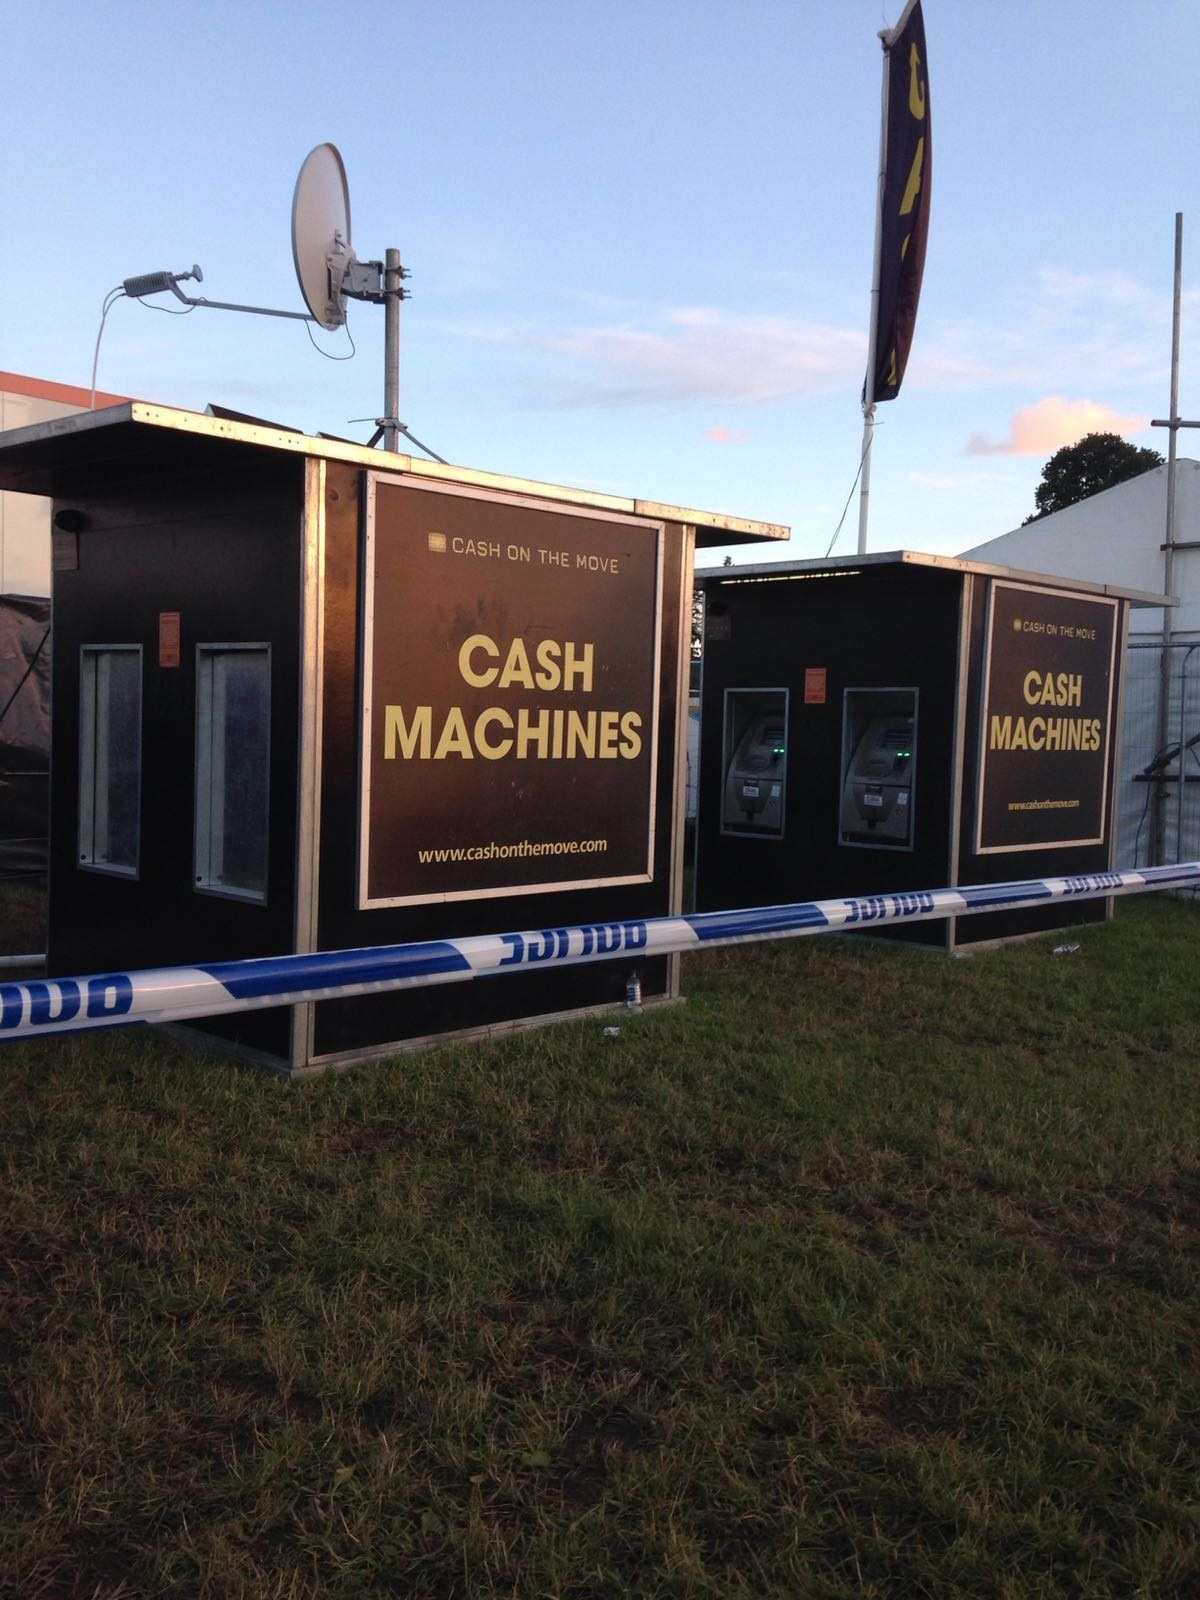 A thief has made off with an ATM at T in the Park. (Picture sent in by Mark MacLellan)